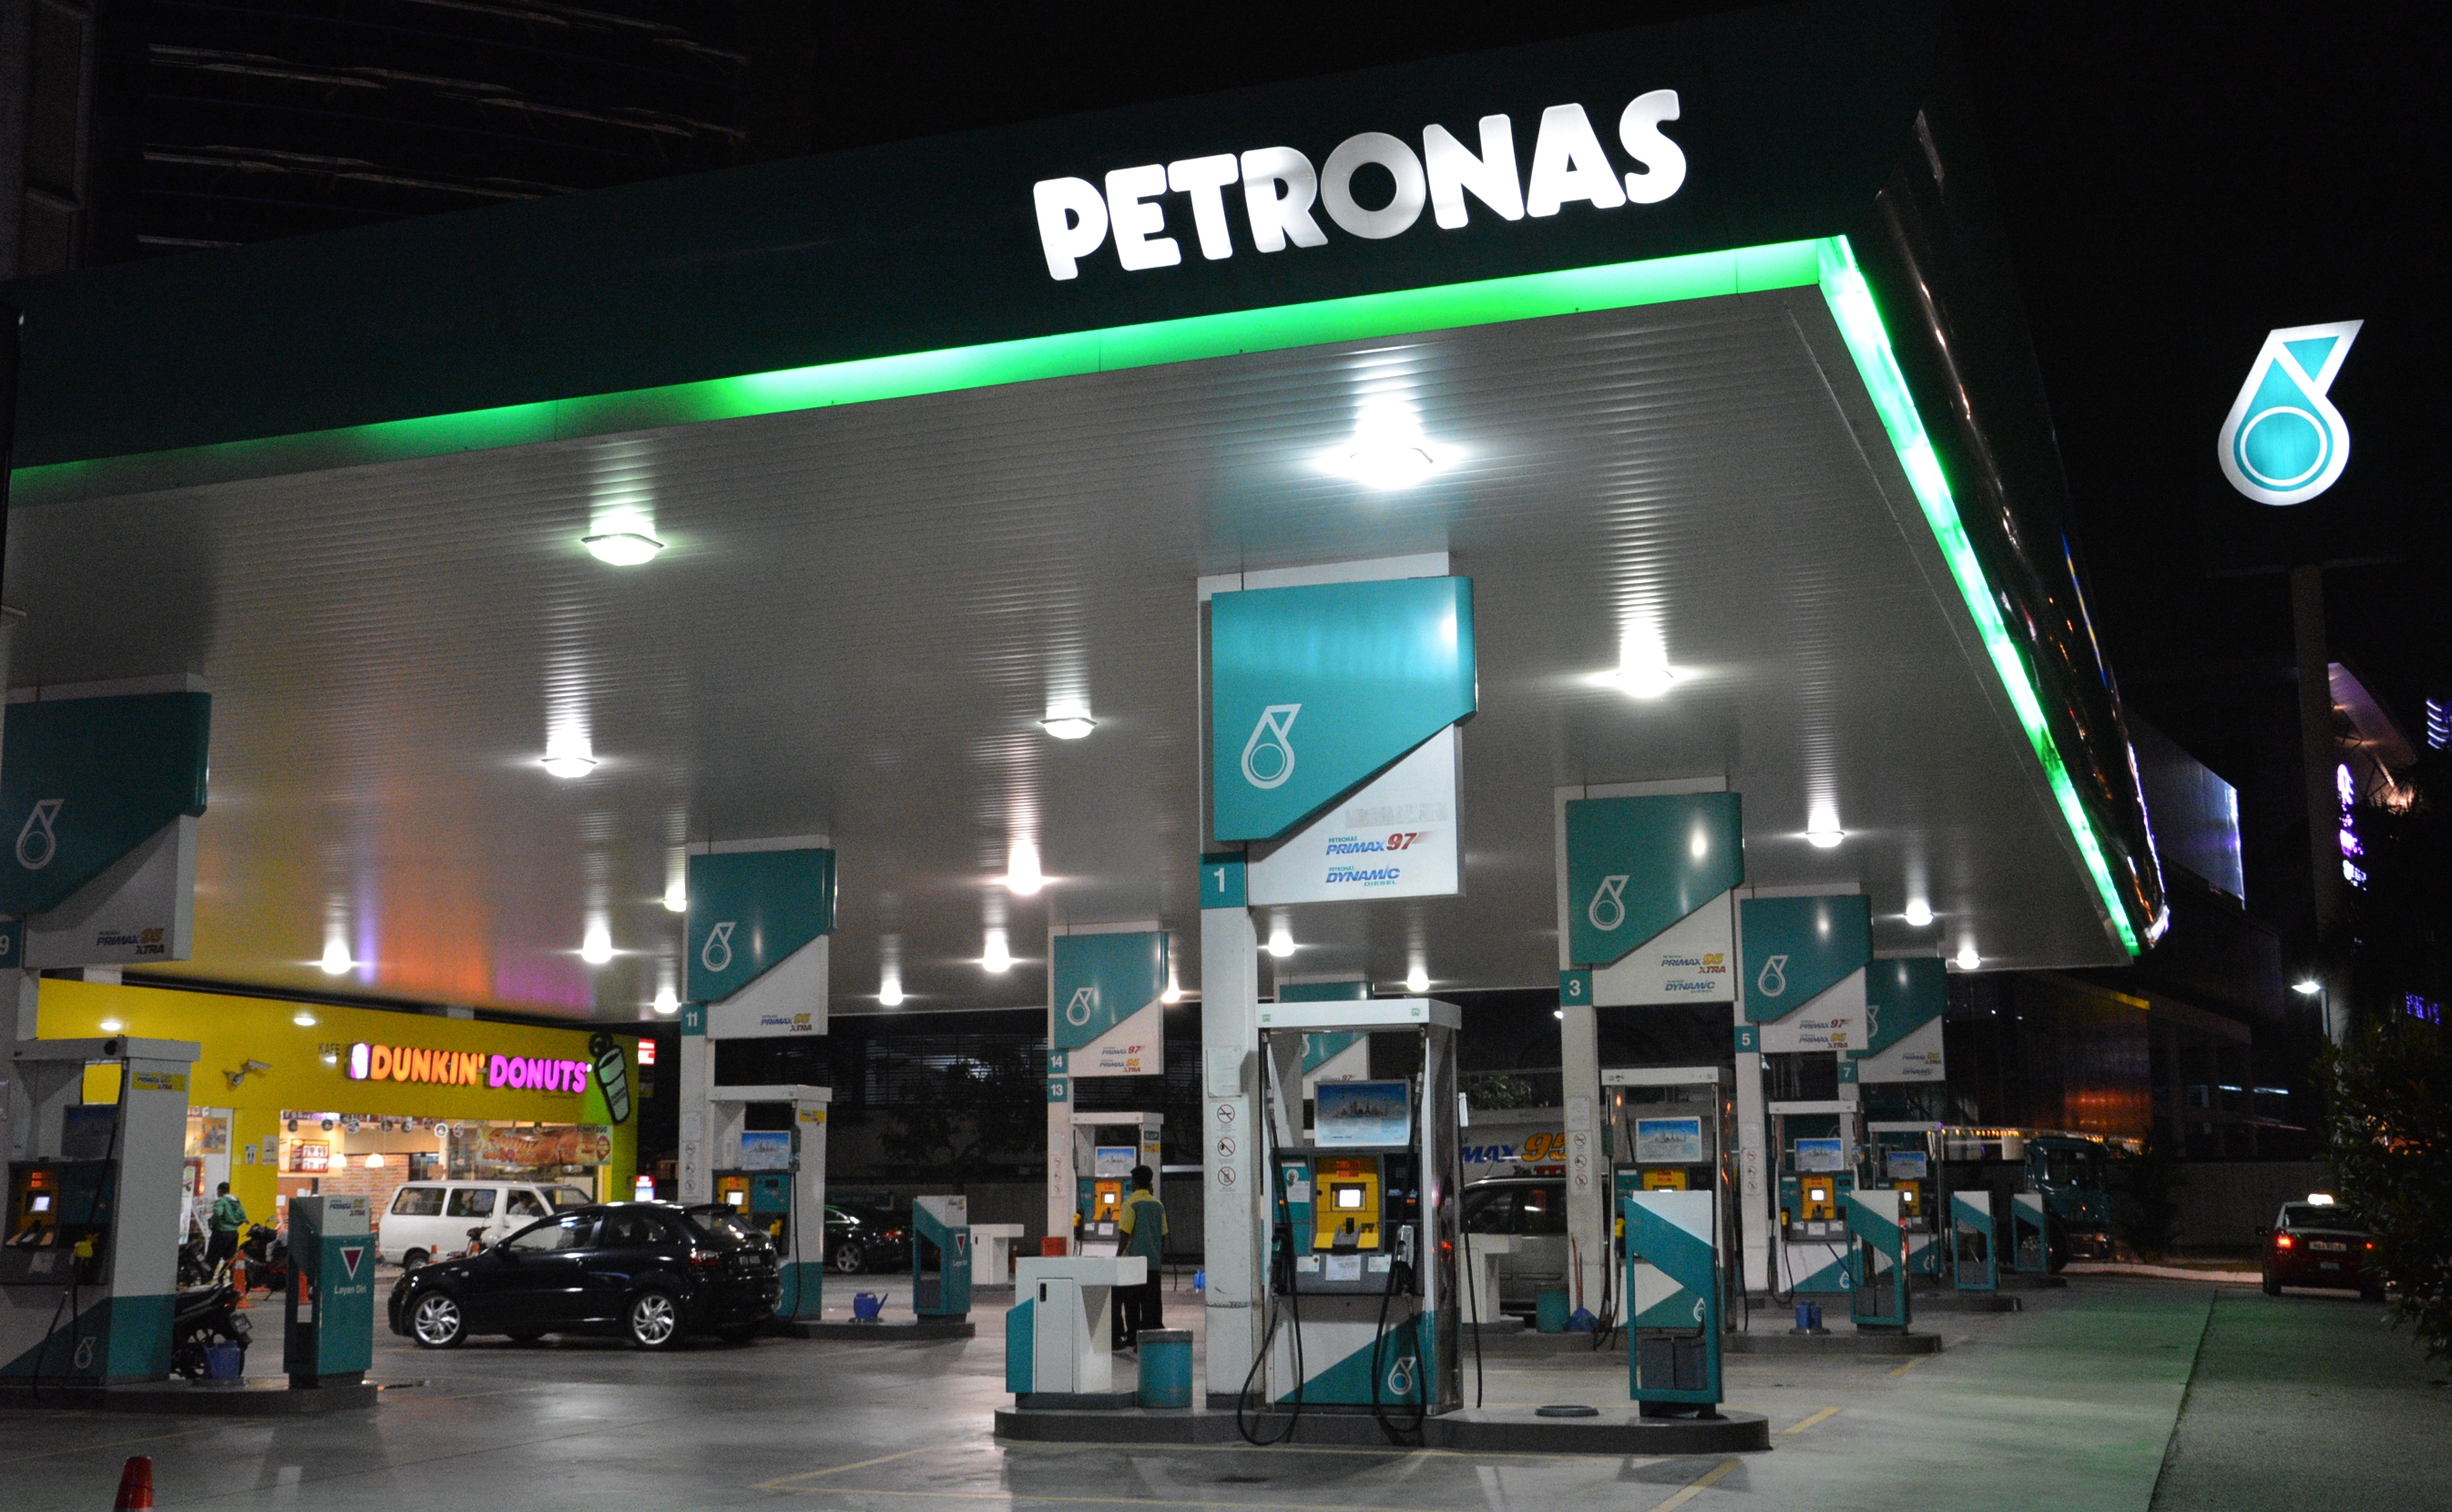 Petronas stations - one-stop convenience centres